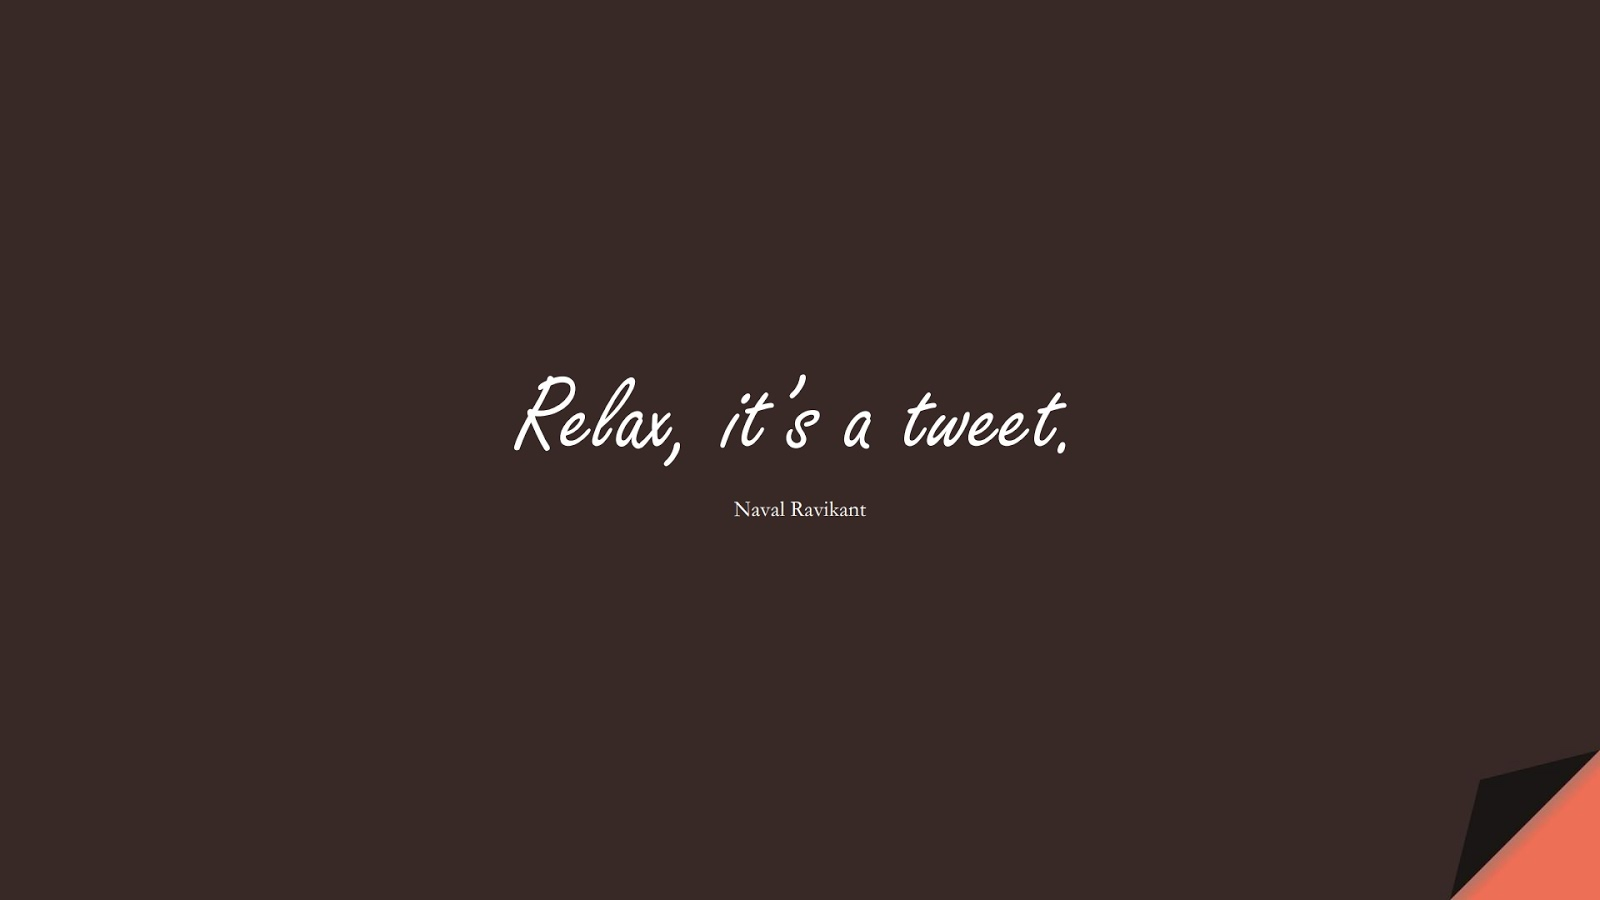 Relax, it's a tweet. (Naval Ravikant);  #CalmQuotes